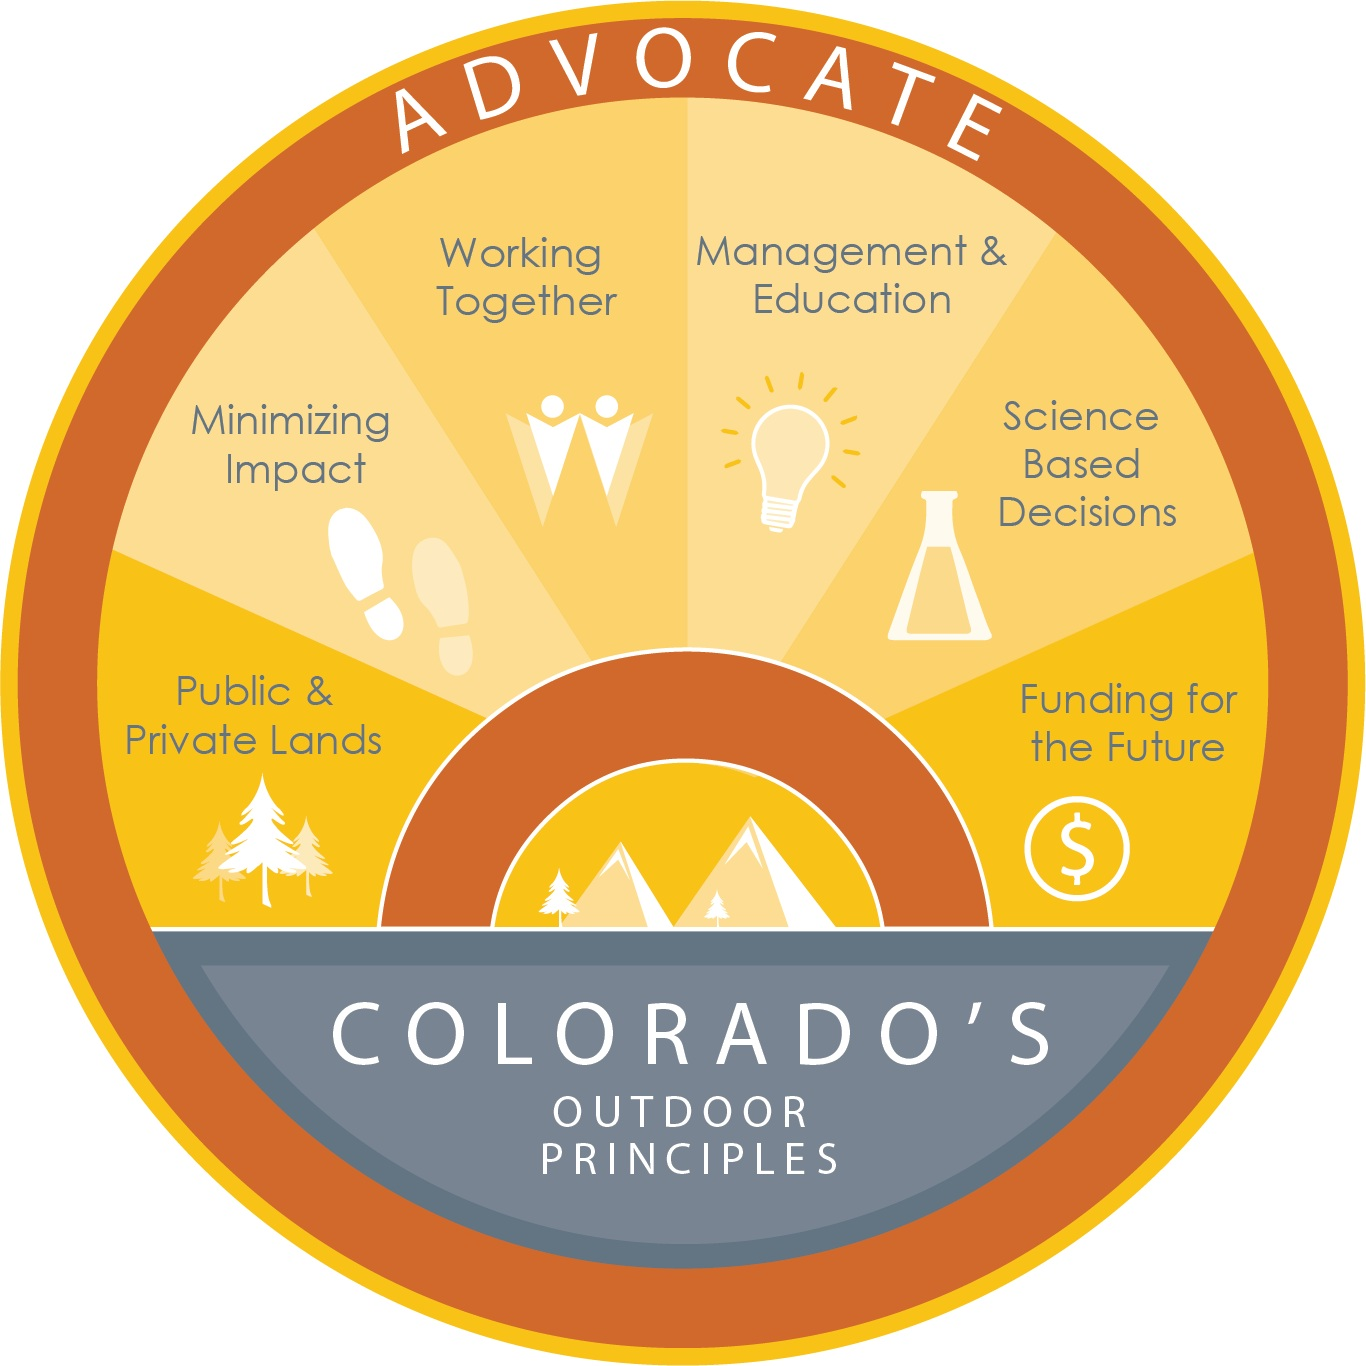 Adopt Colorado's Outdoor Principles - This set of 7 principles advance a shared stewardship ethic by promoting both recreational enjoyment and thoughtful conservation of Colorado's special places. CPW and the Colorado Outdoor Partnership, comprised of conservation organizations, sportsmen and outdoor recreationists, collaborated to adapt these principles for Colorado.